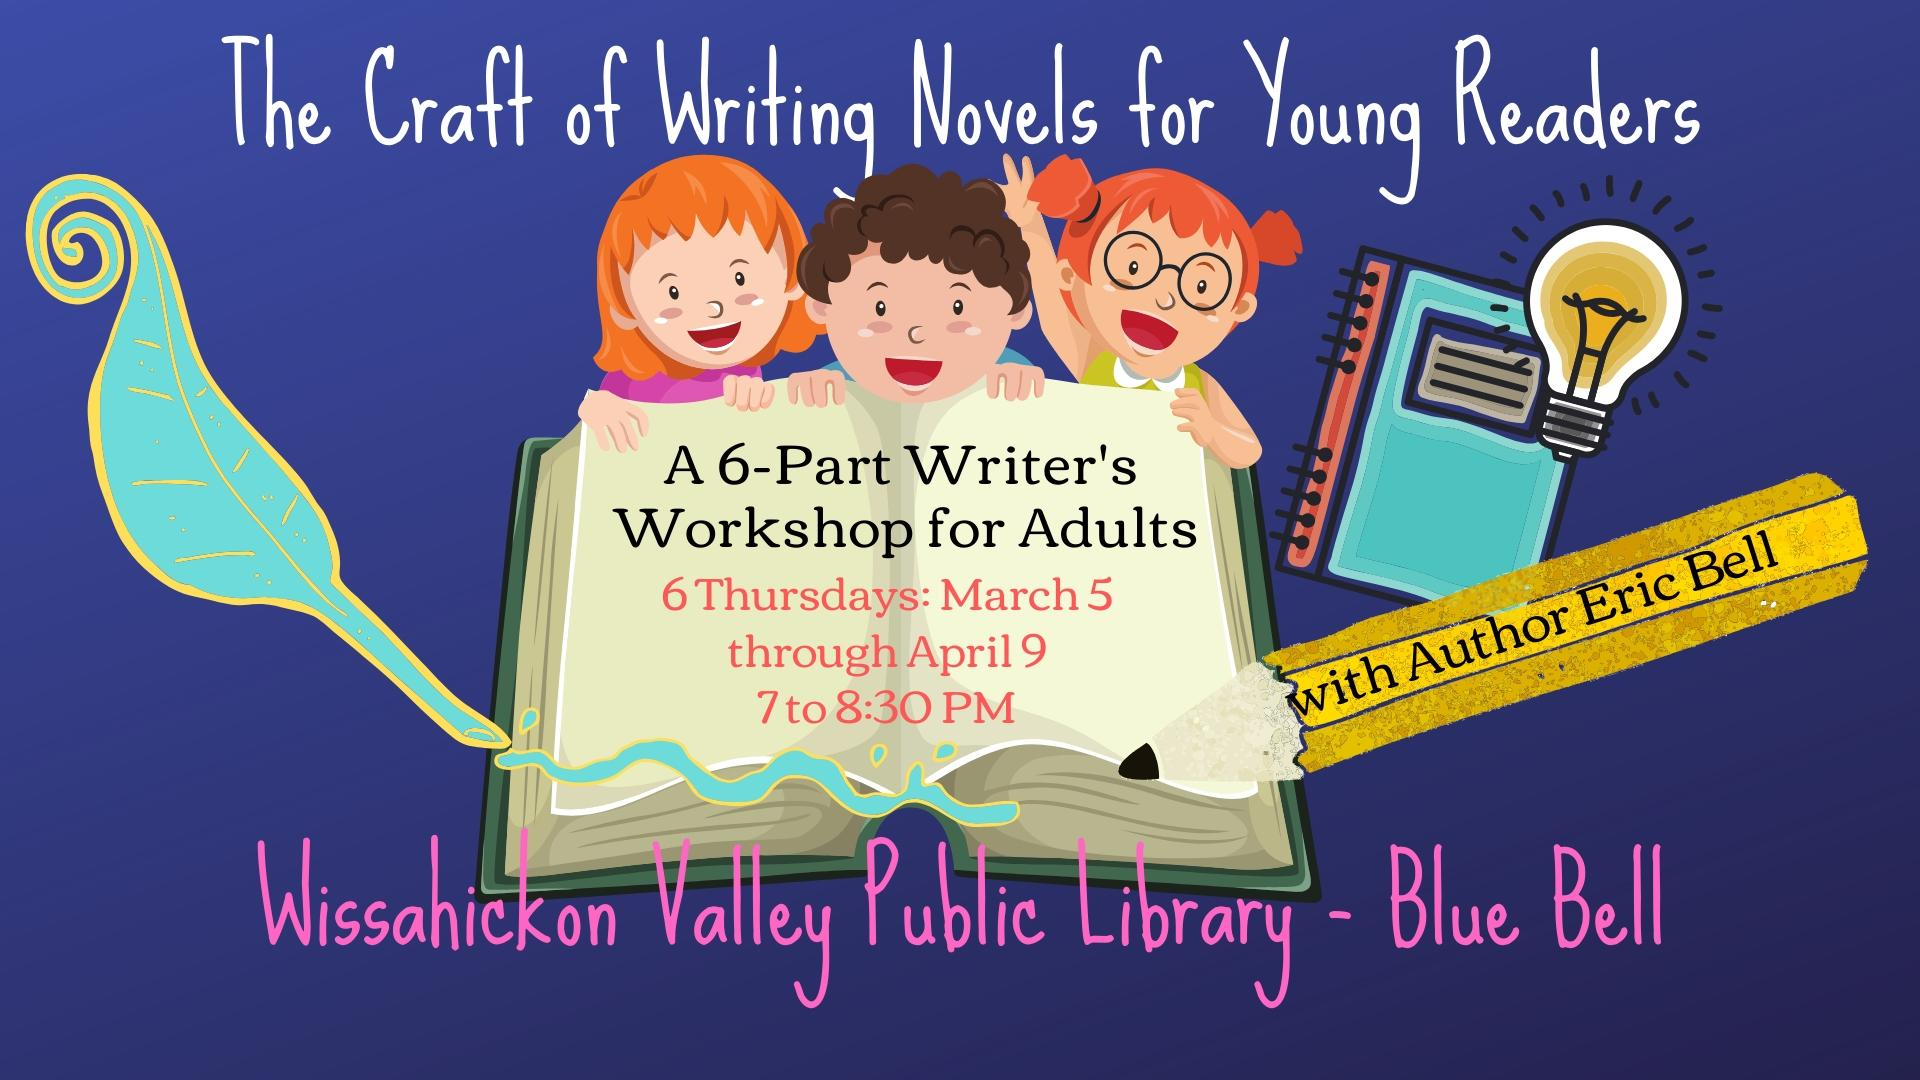 The Craft of Writing Novels for Young Readers